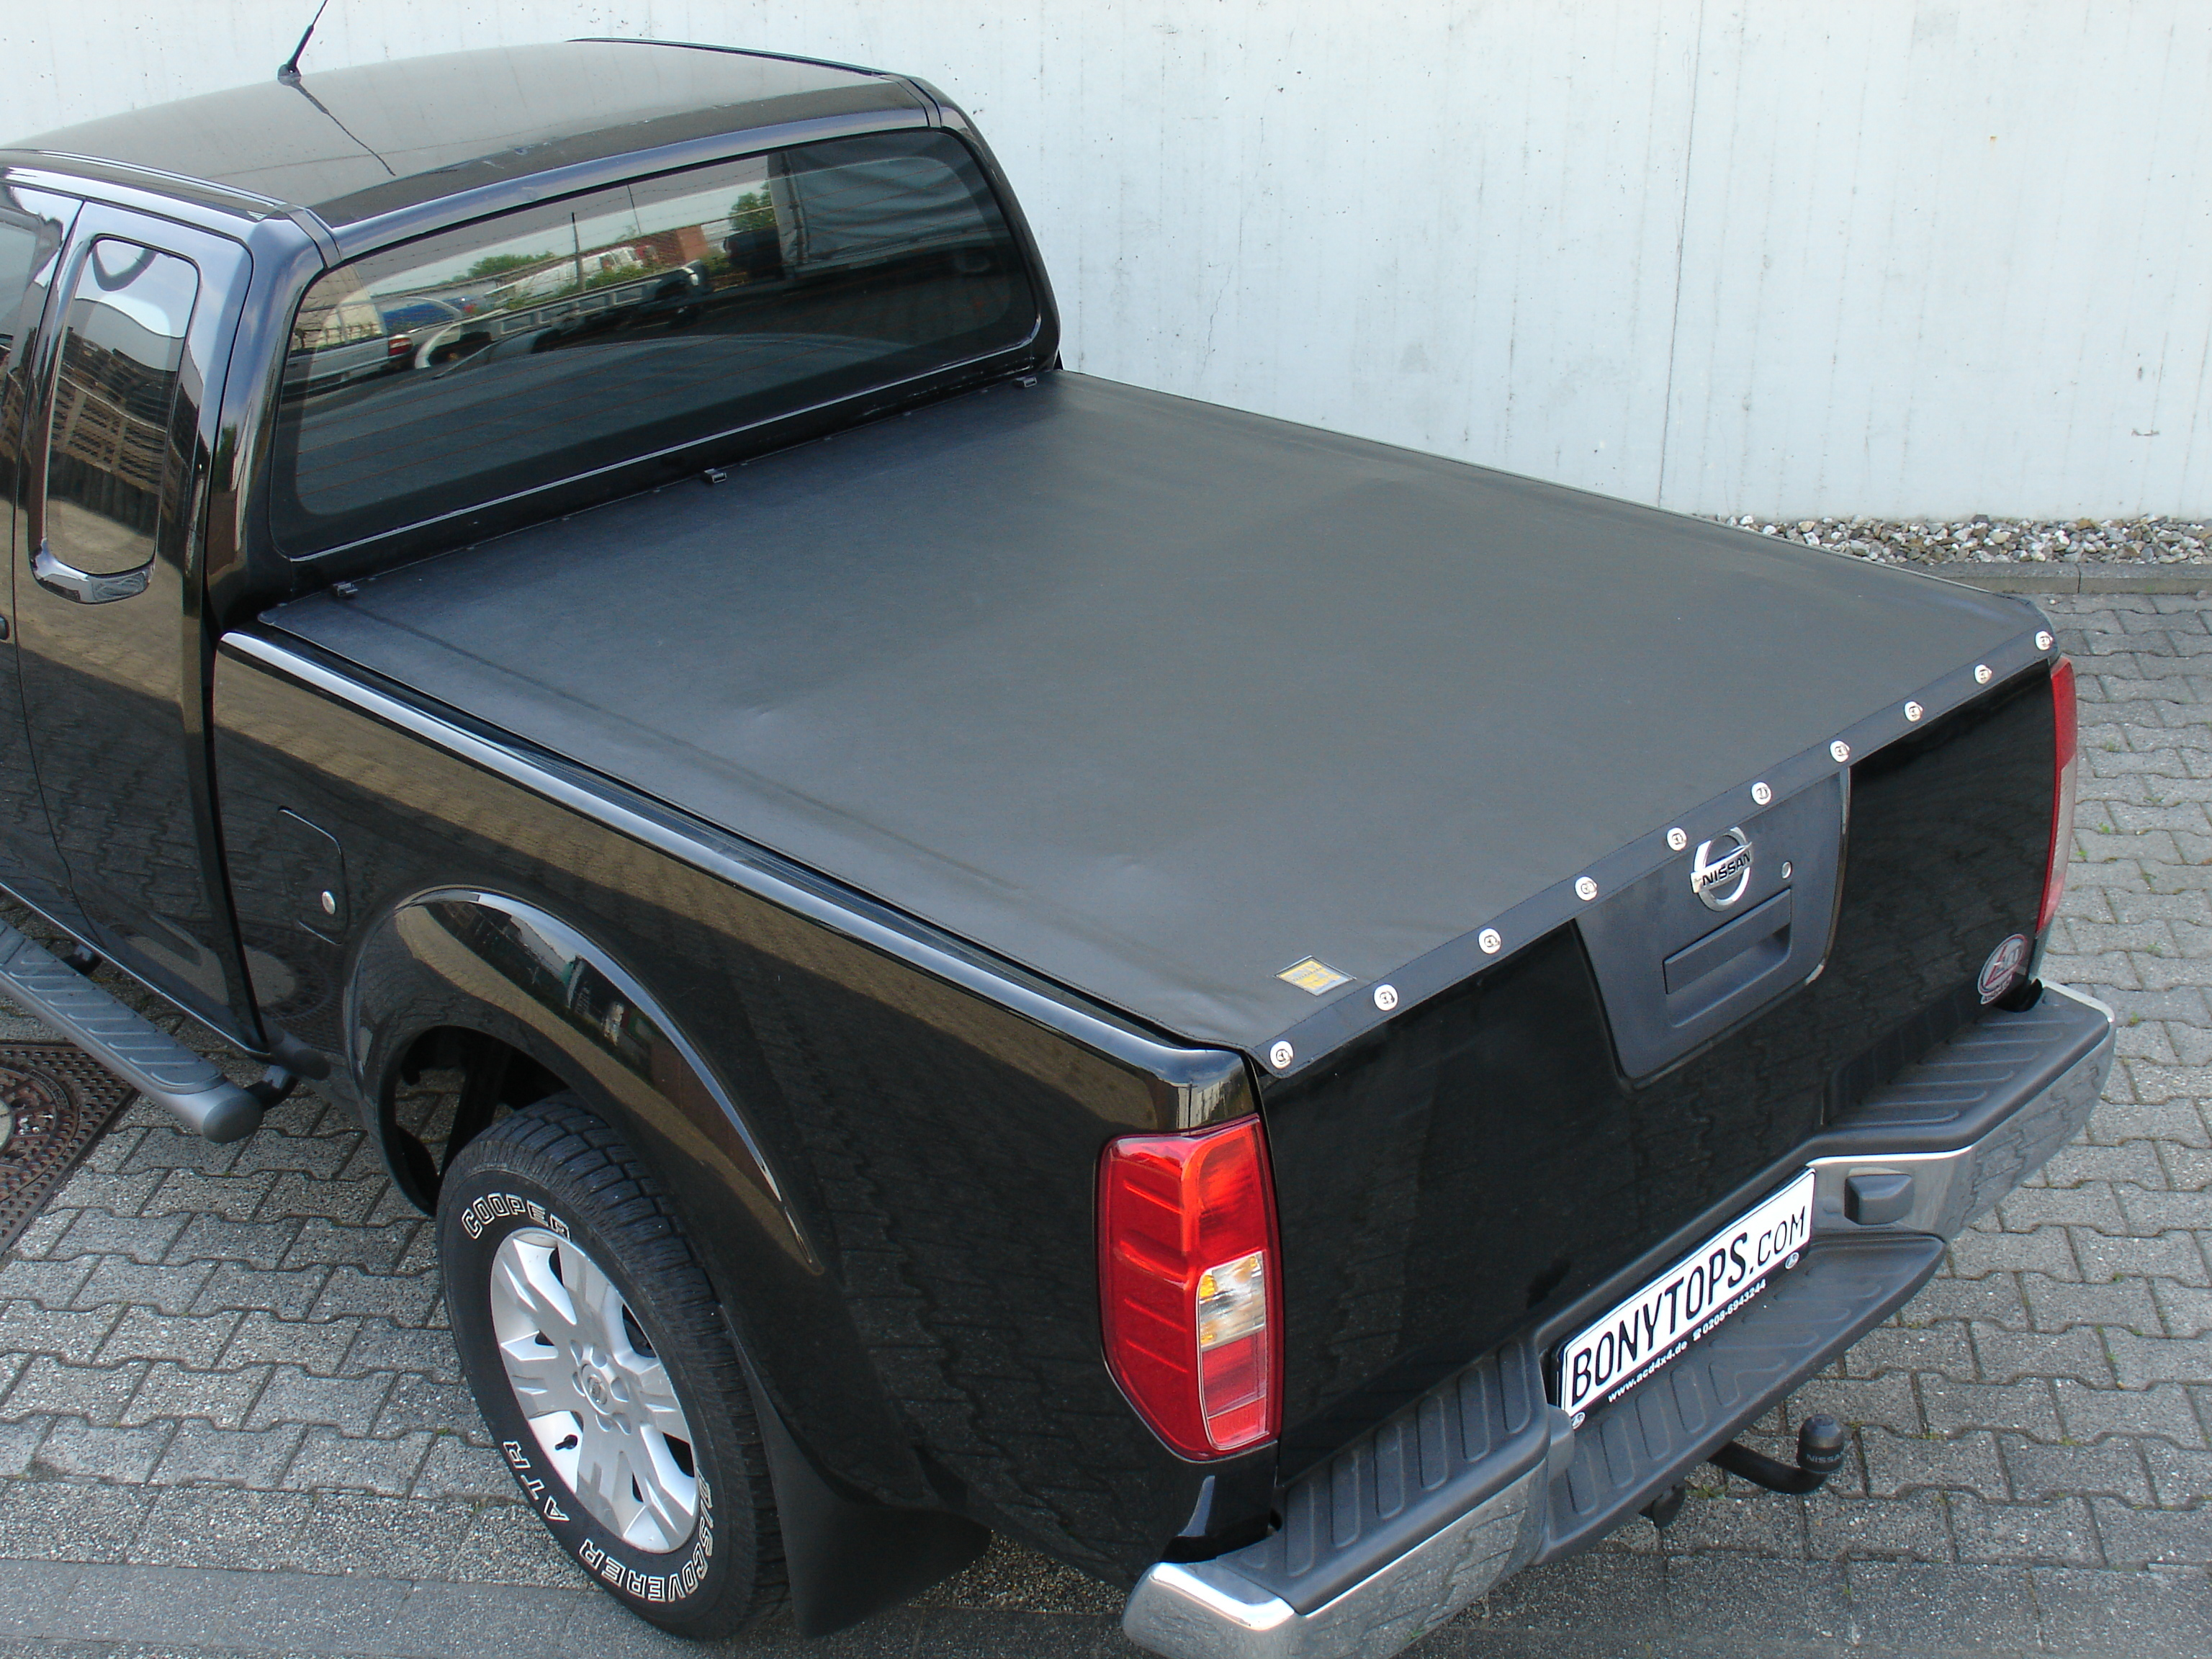 bonytops laderaumabdeckungshersteller ford ranger. Black Bedroom Furniture Sets. Home Design Ideas